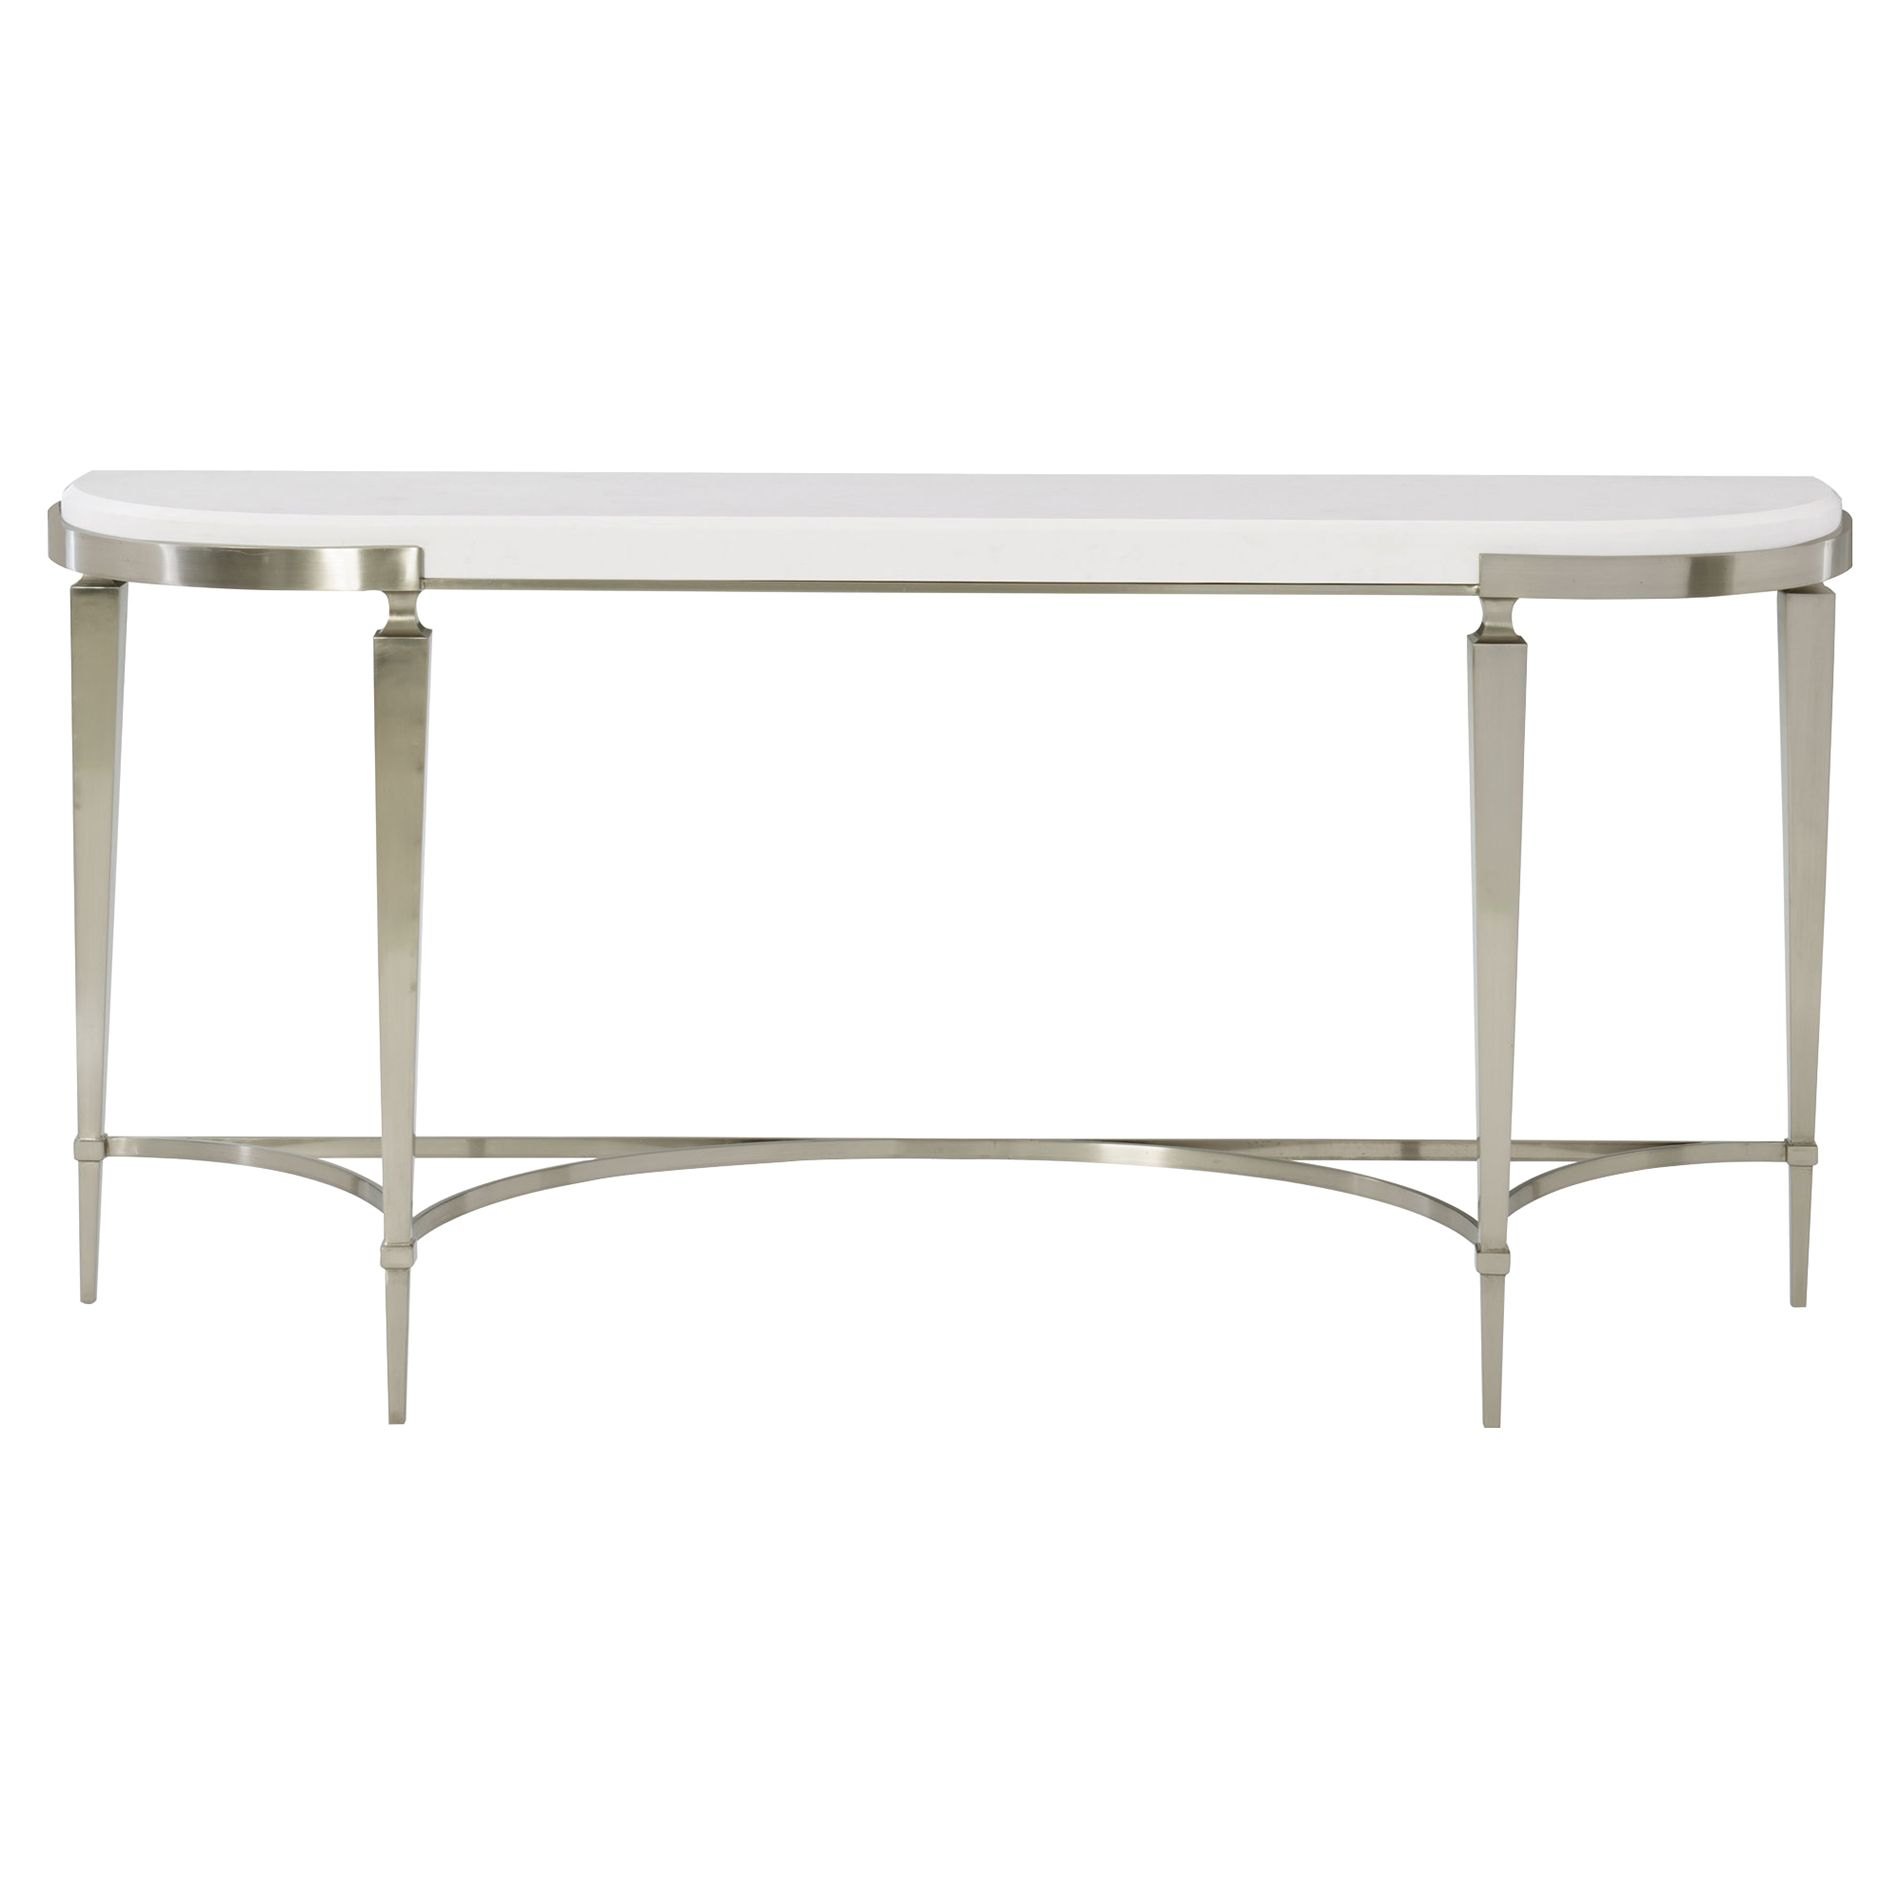 Hayley Hollywood Regency White Quartz Stone Stop Demilune Console Table In 2021 Console Table Steel Console Table Marble Console Table